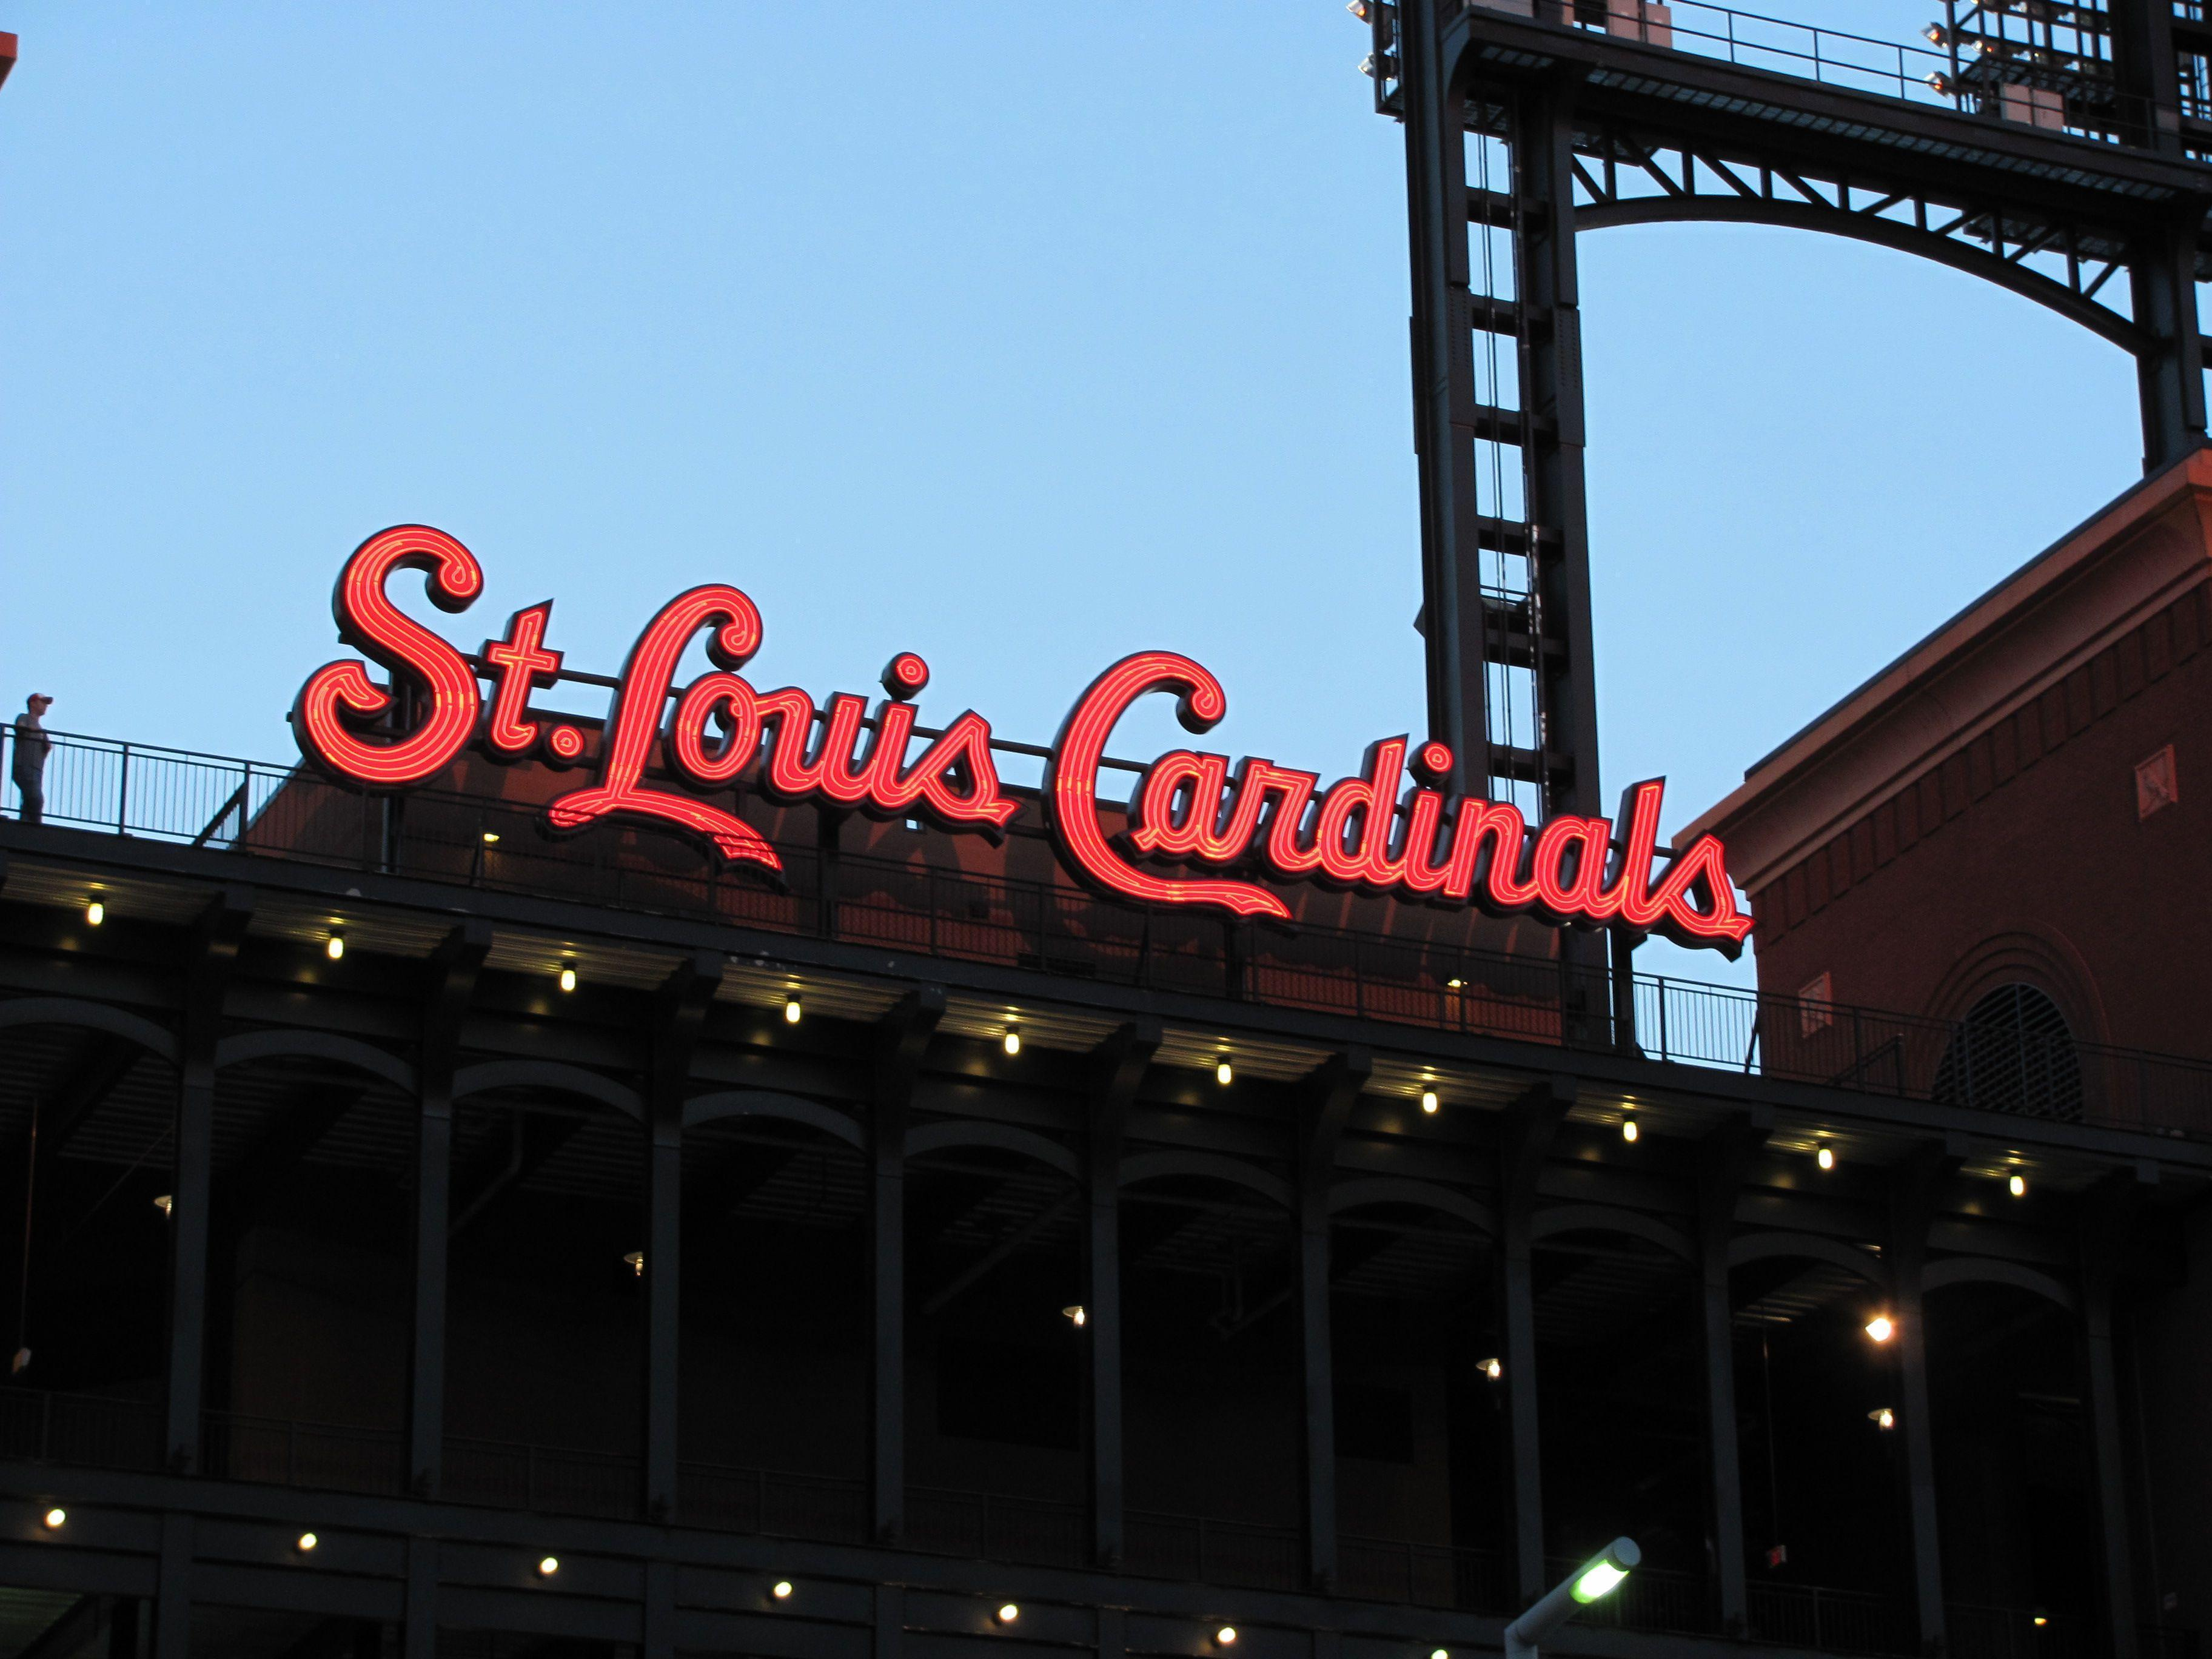 st louis cardinals baseball hd wallpapers high definition amazing ...